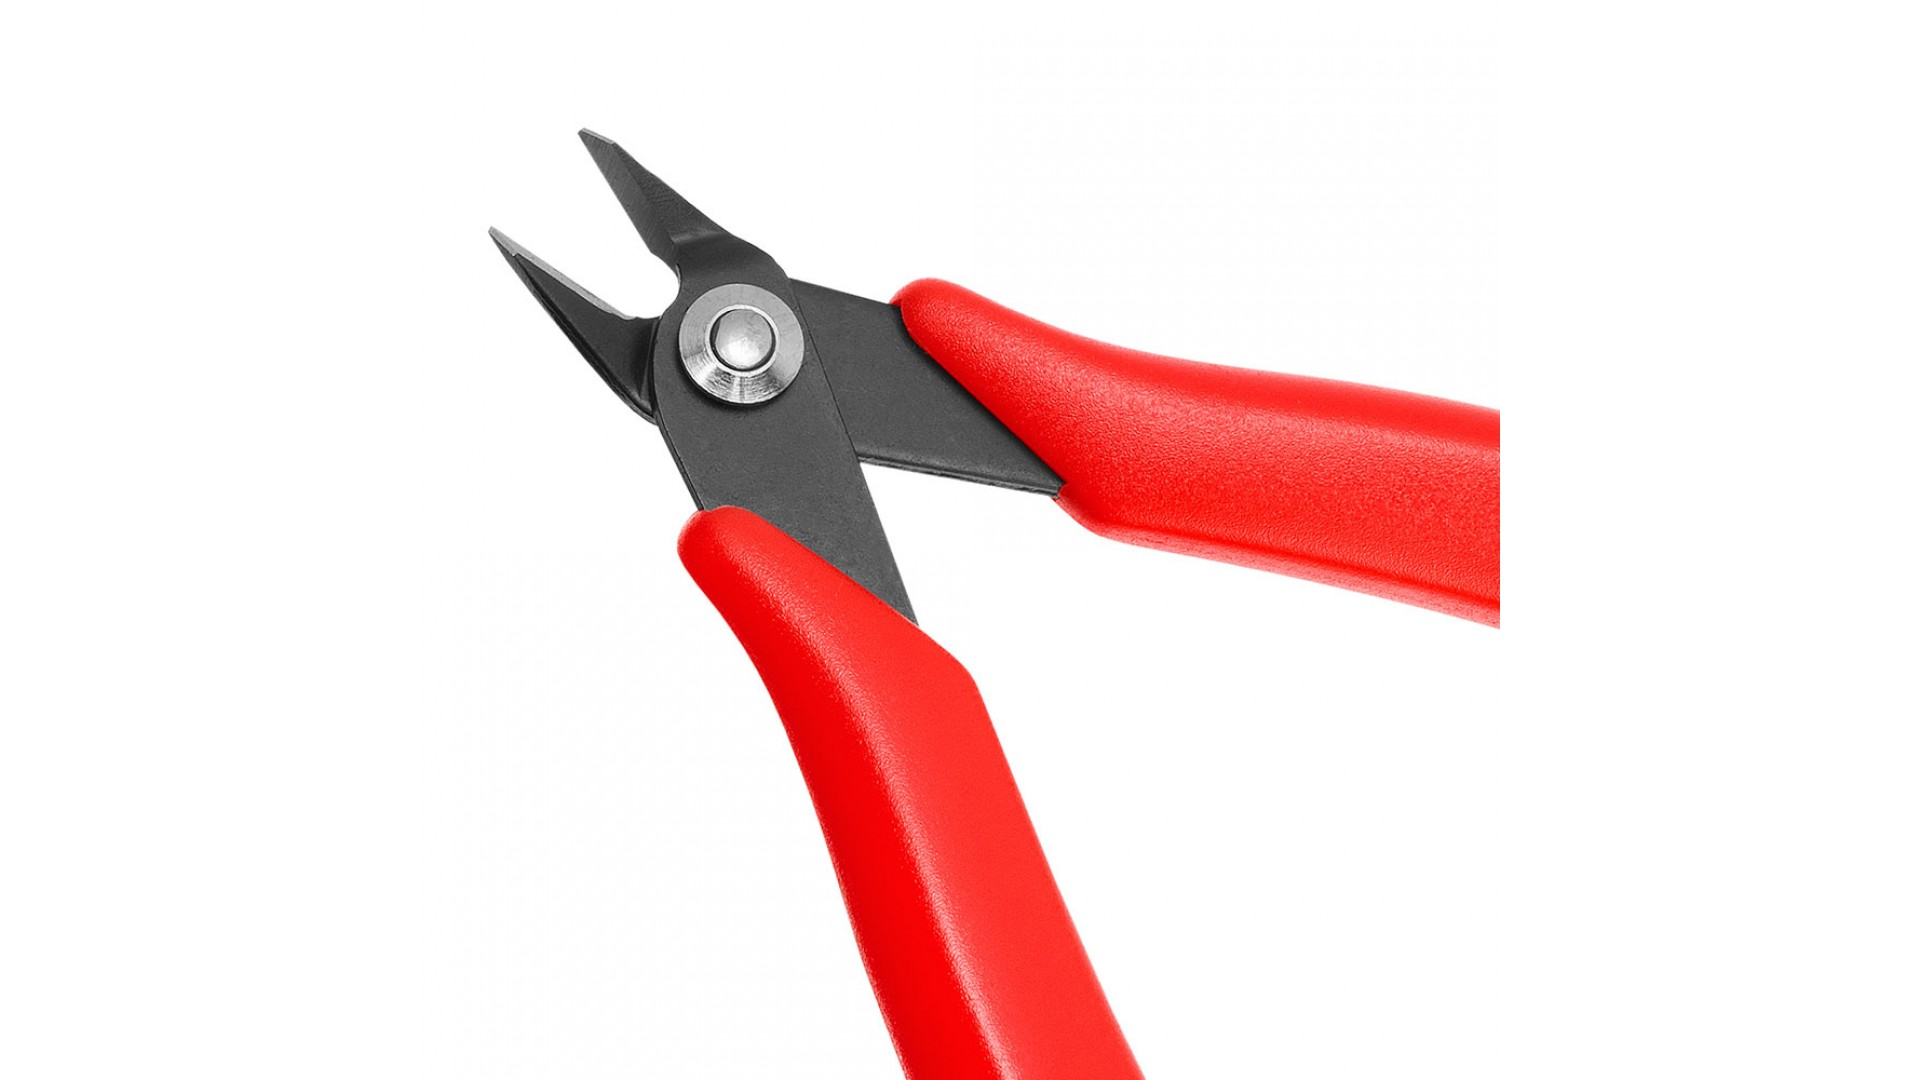 platinum tools 10531c 5 inch side cutting pliers with red comfort